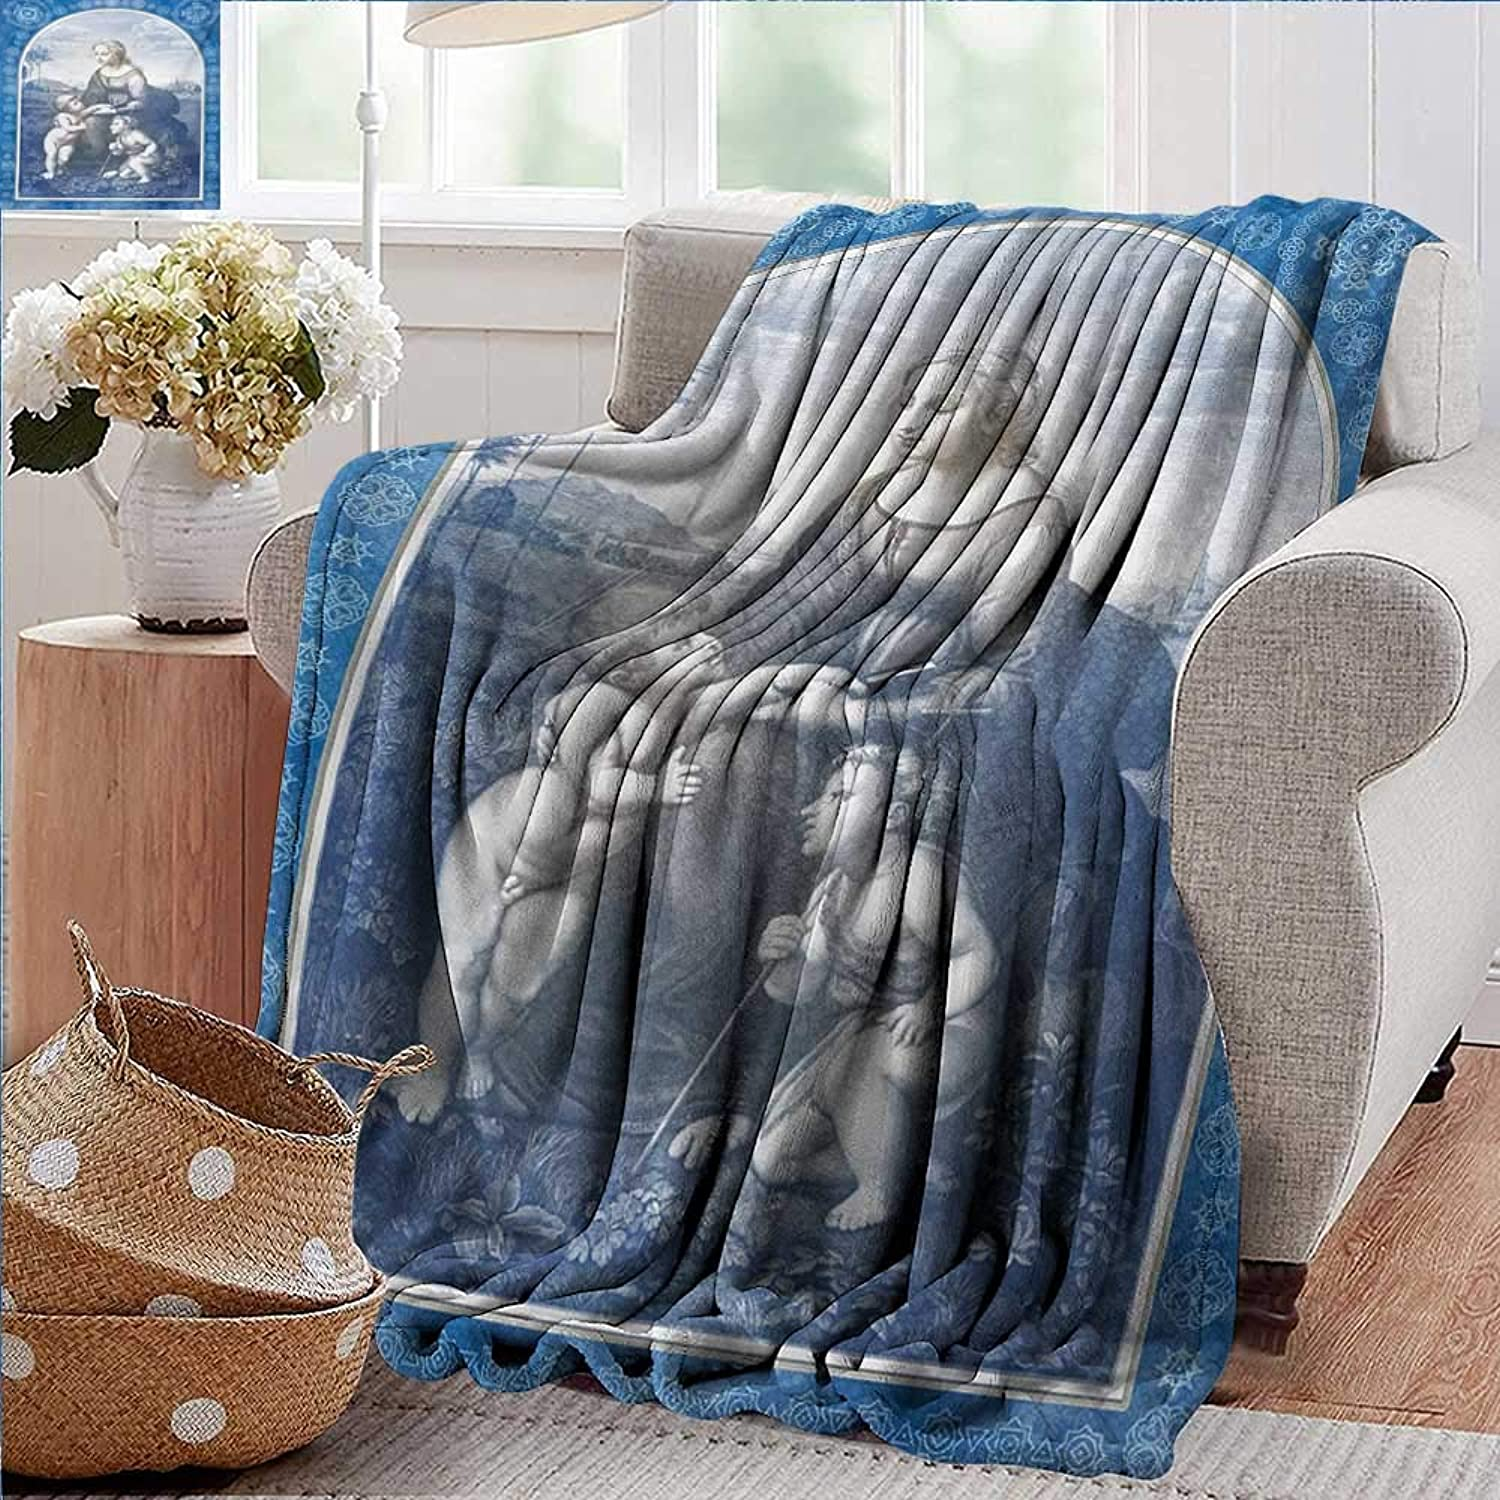 PearlRolan Weighted Blanket for Kids,Renaissance,Medieval Middle Ages Mother and Sons on Farm with Antique Frame Artful Print,bluee Grey,Weighted Blanket for Adults Kids, Better Deeper Sleep 35 x60